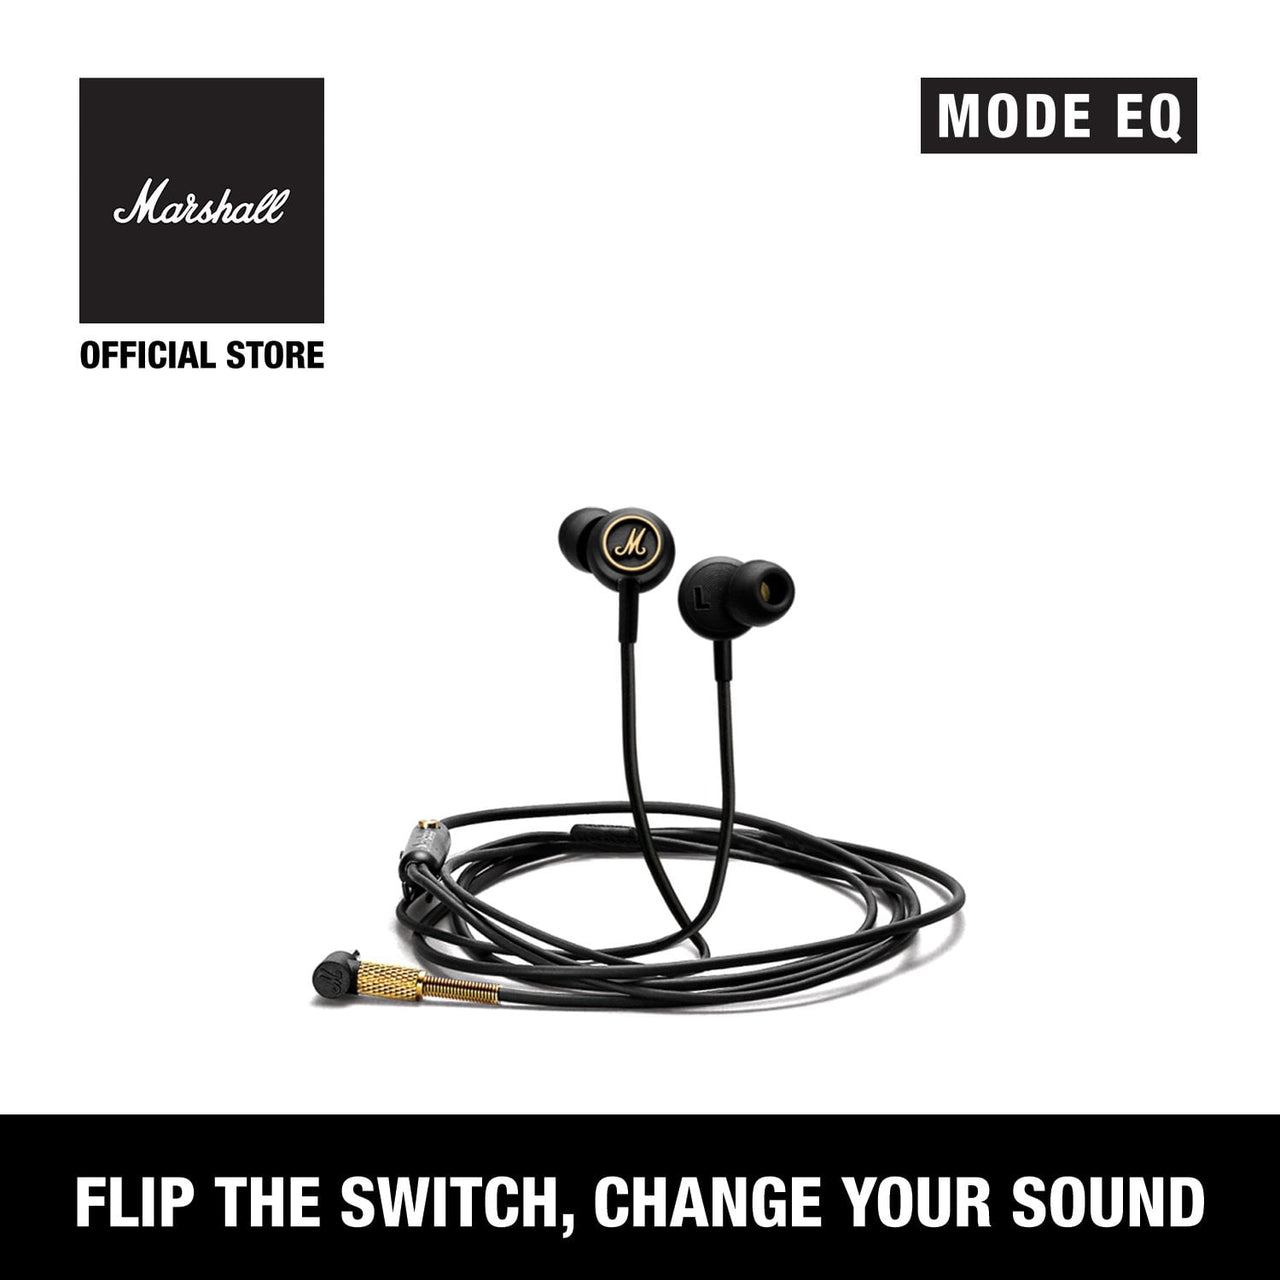 Mode EQ Black & Gold [EVENT EXCLUSIVE], Headphones, Marshall Headphones, ASH Asia